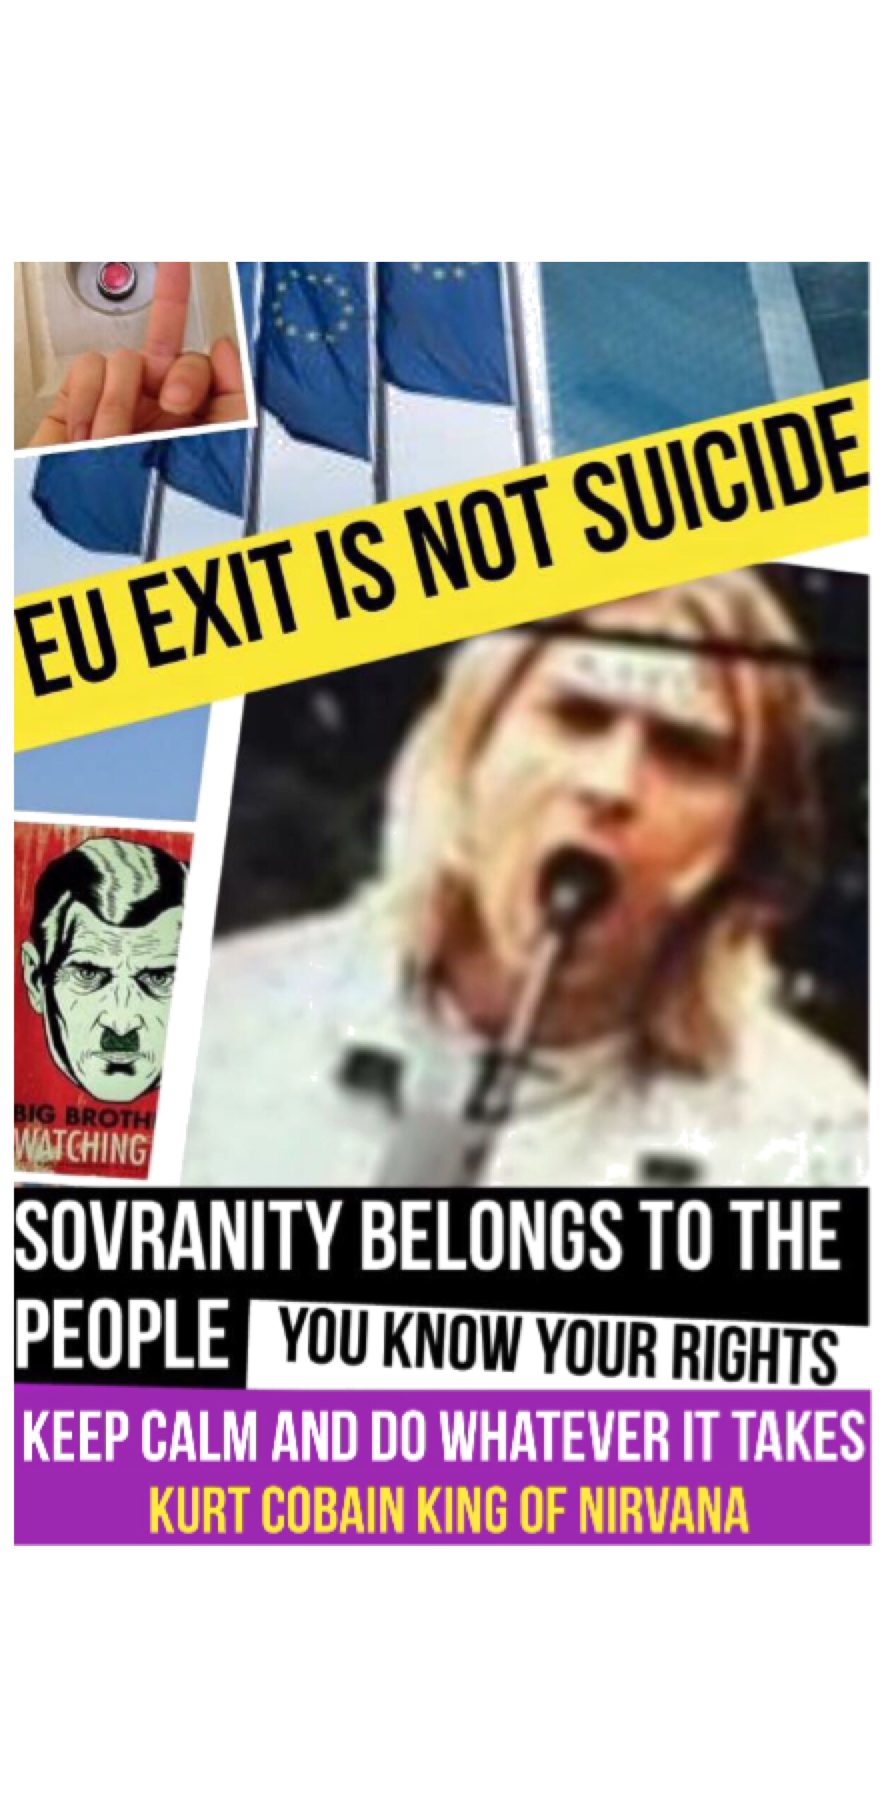 cover Euexit is not suicide